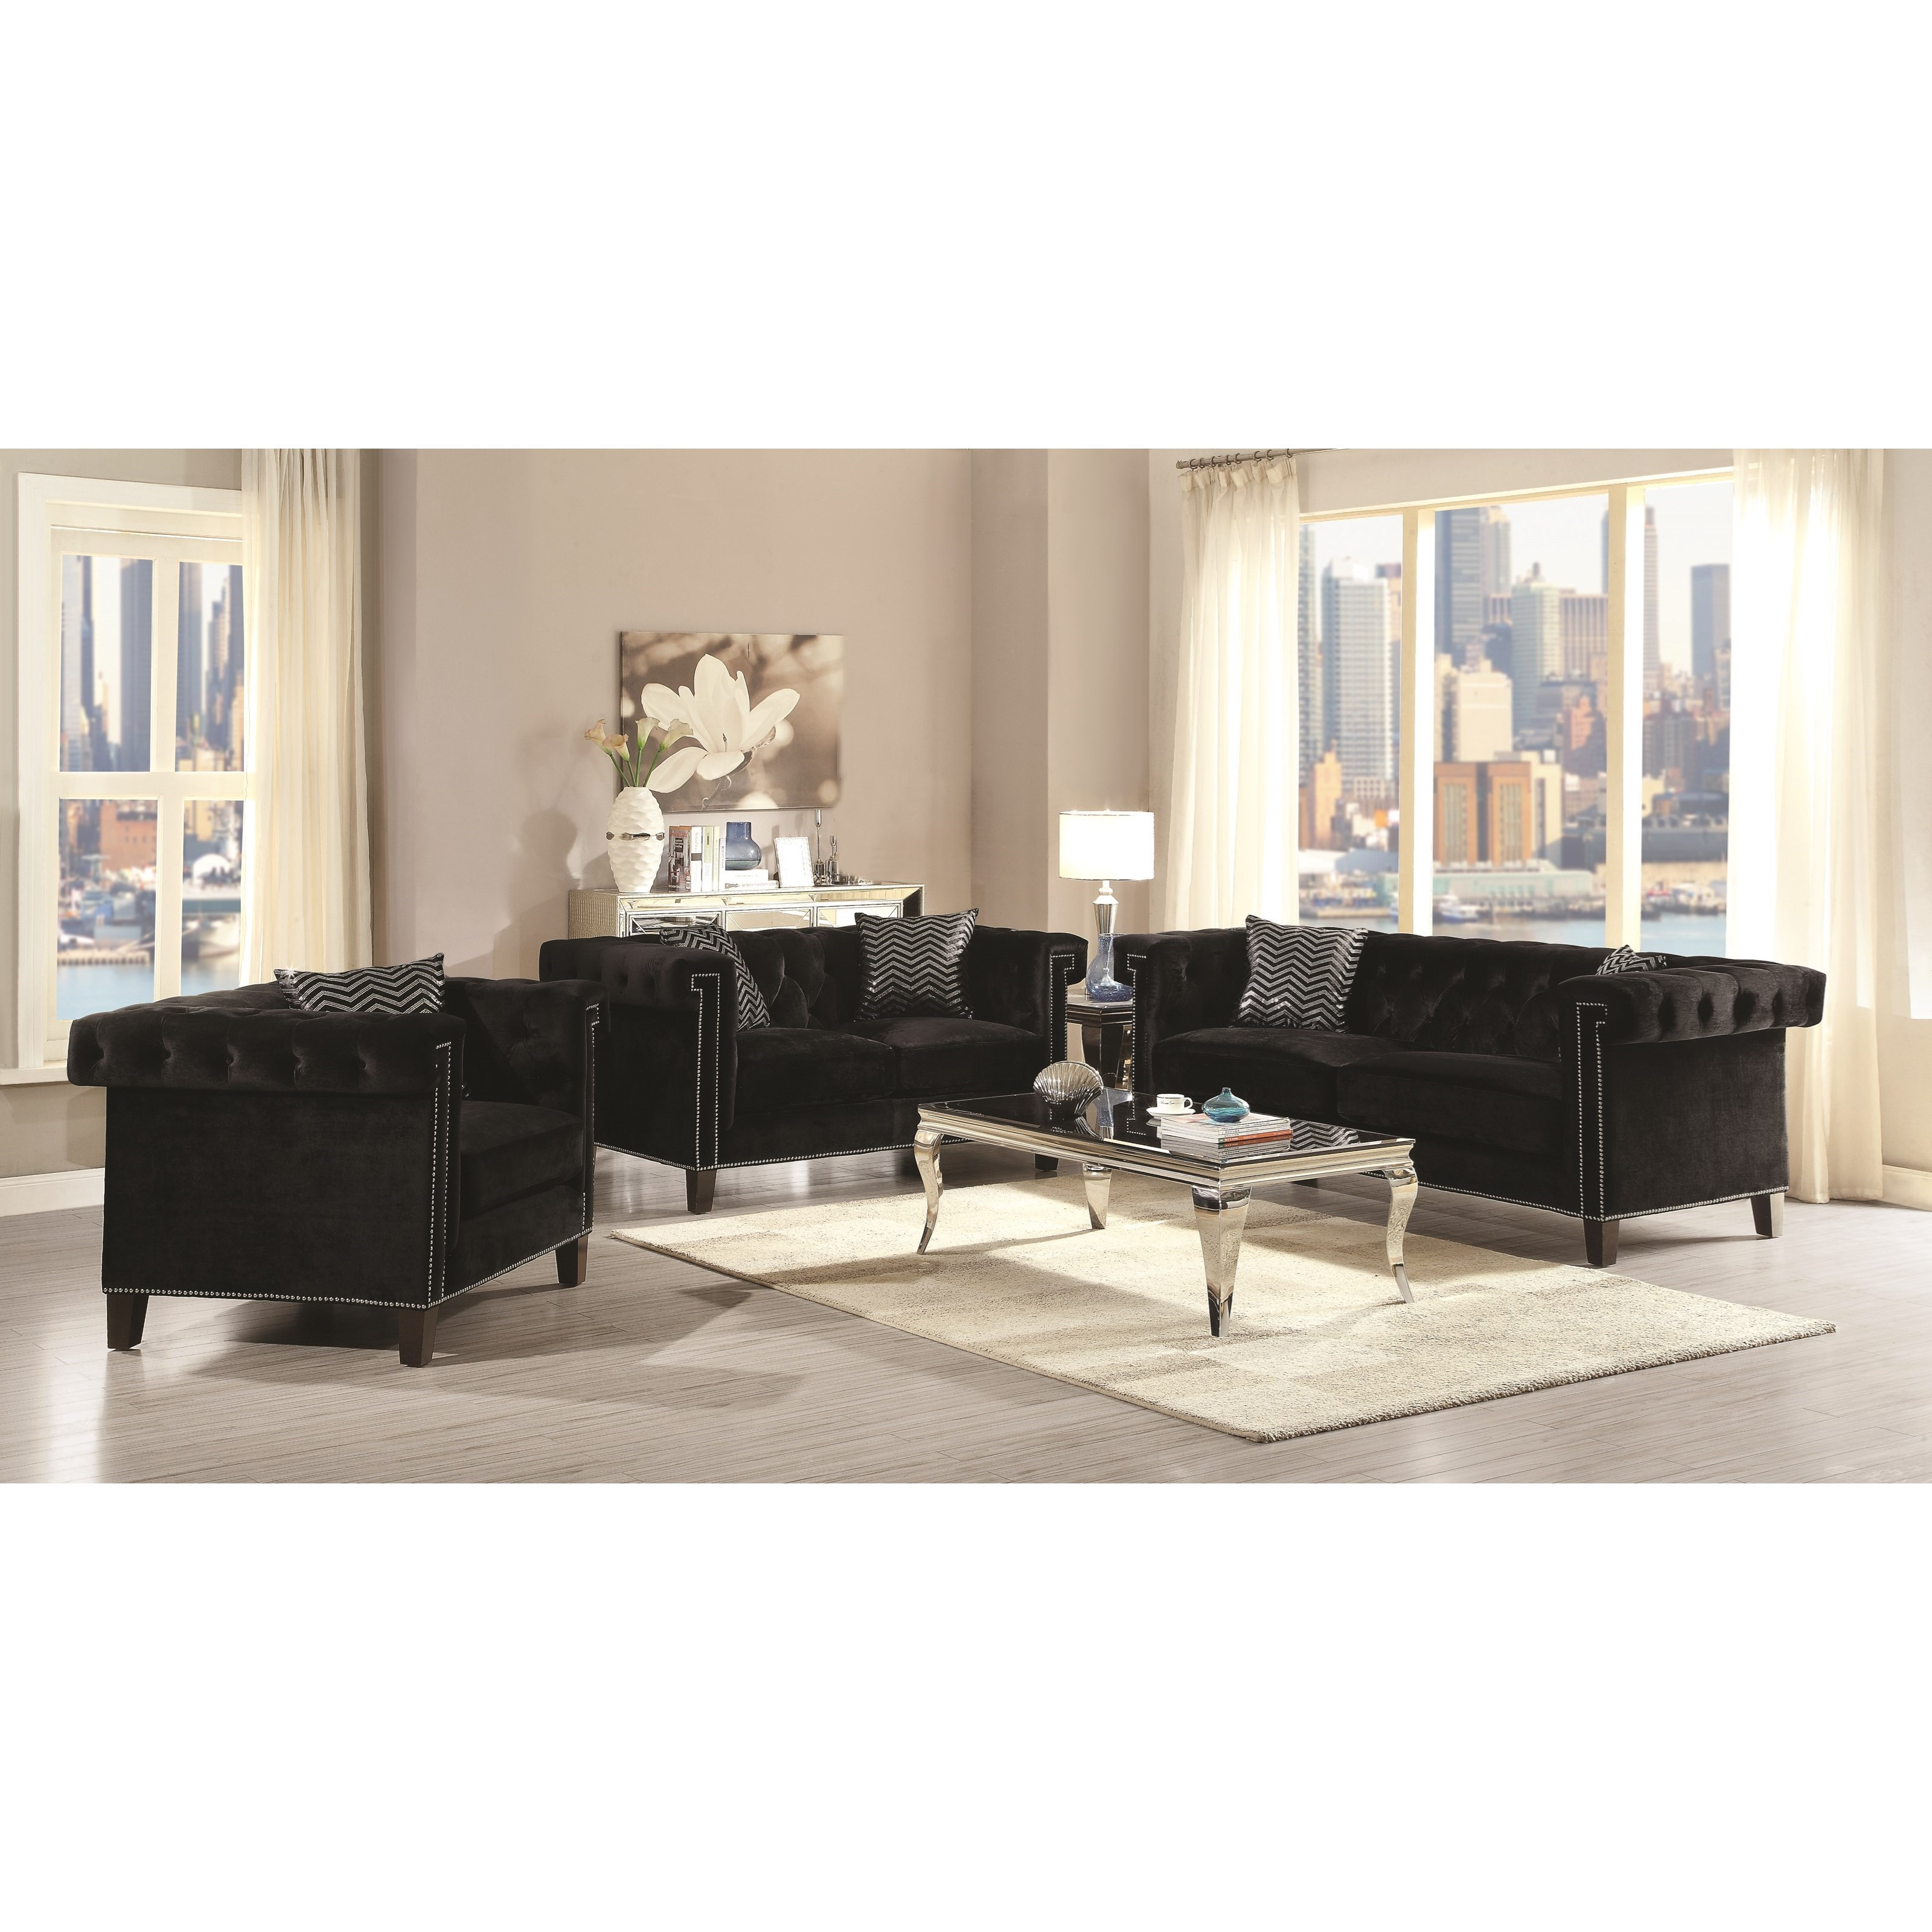 Coaster Reventlow Glamorous Living Room Group Value City